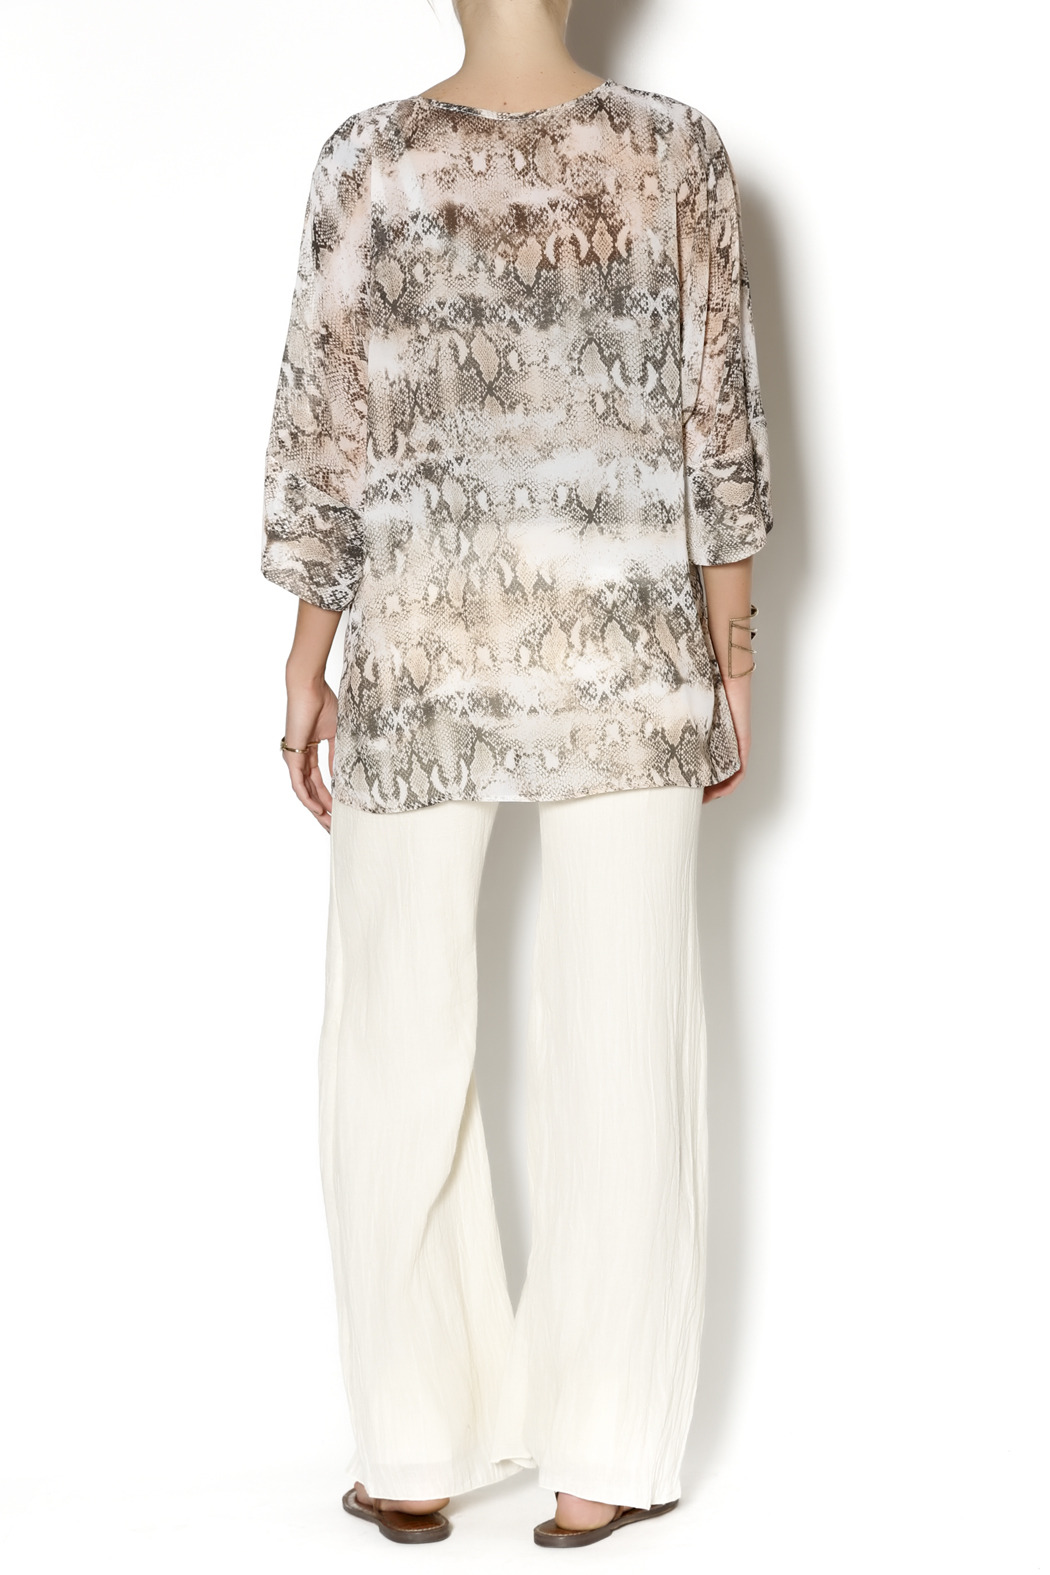 Julian Chang Snake Print Tunic - Side Cropped Image